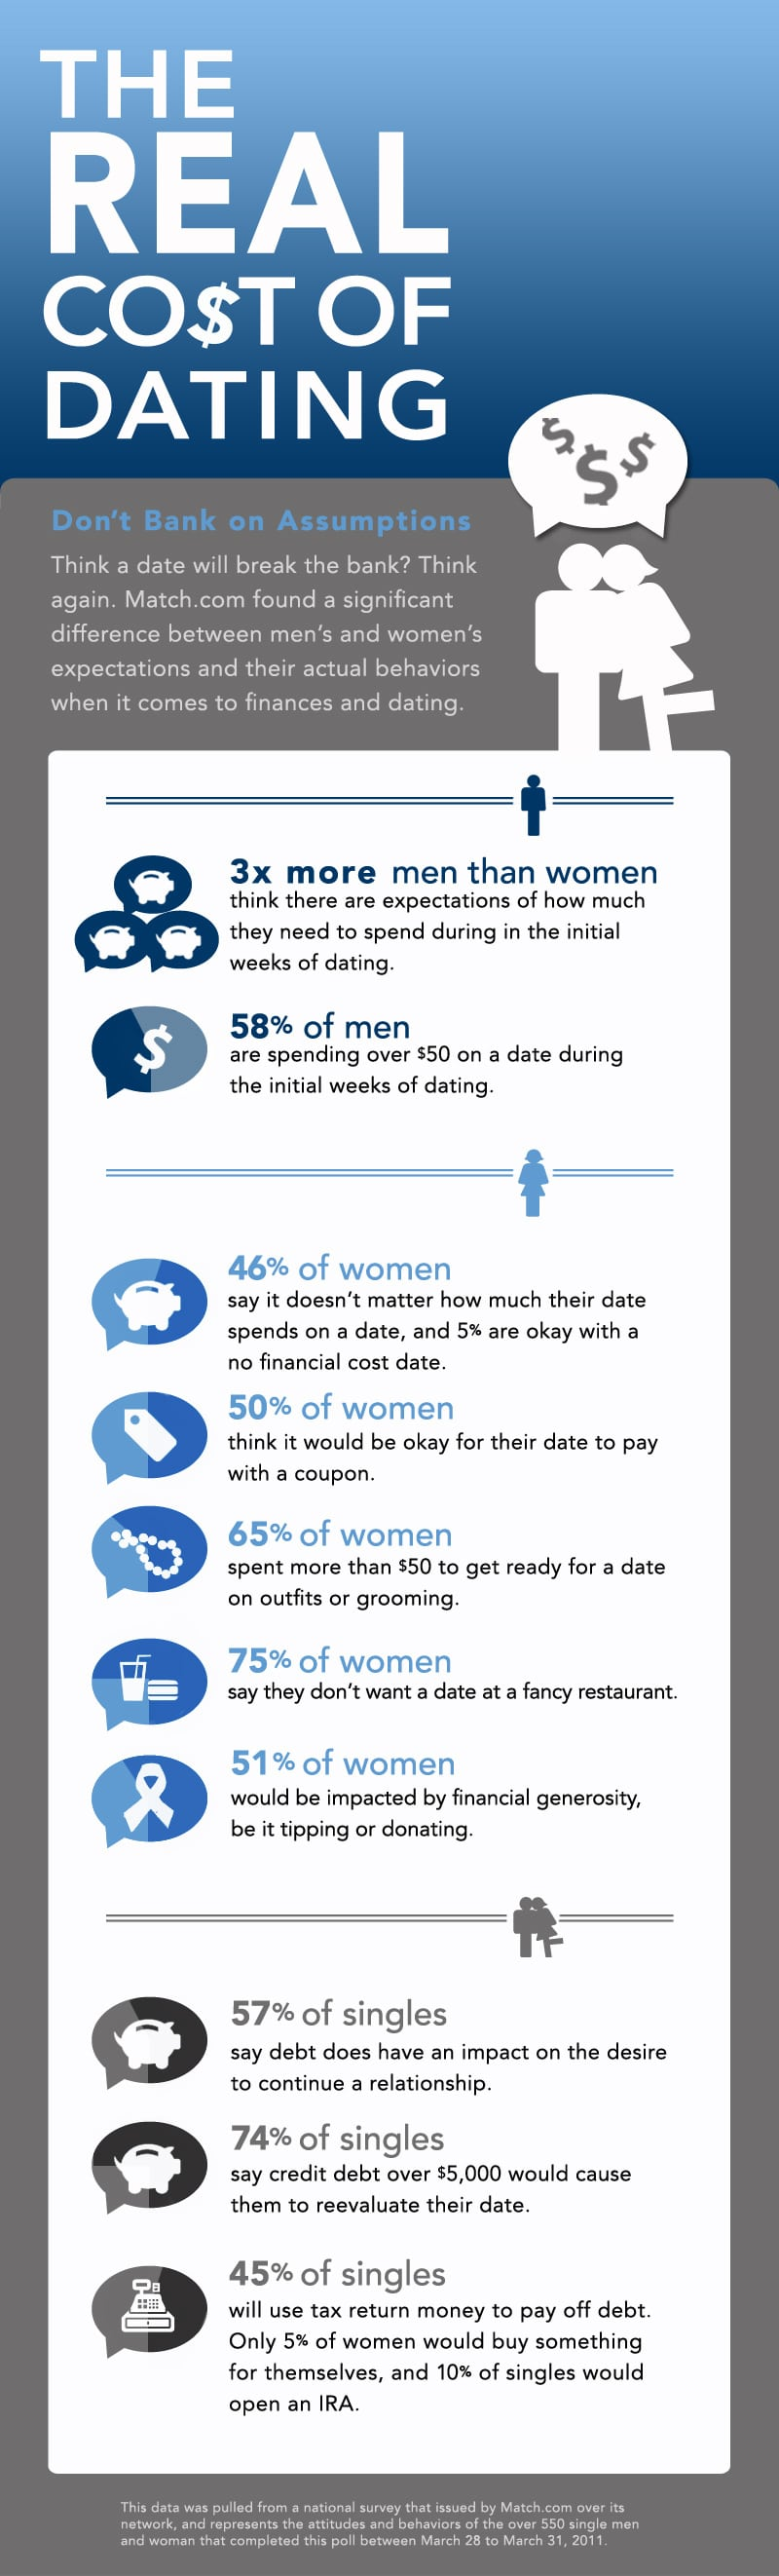 The Real Cost Of Dating [Infographic]